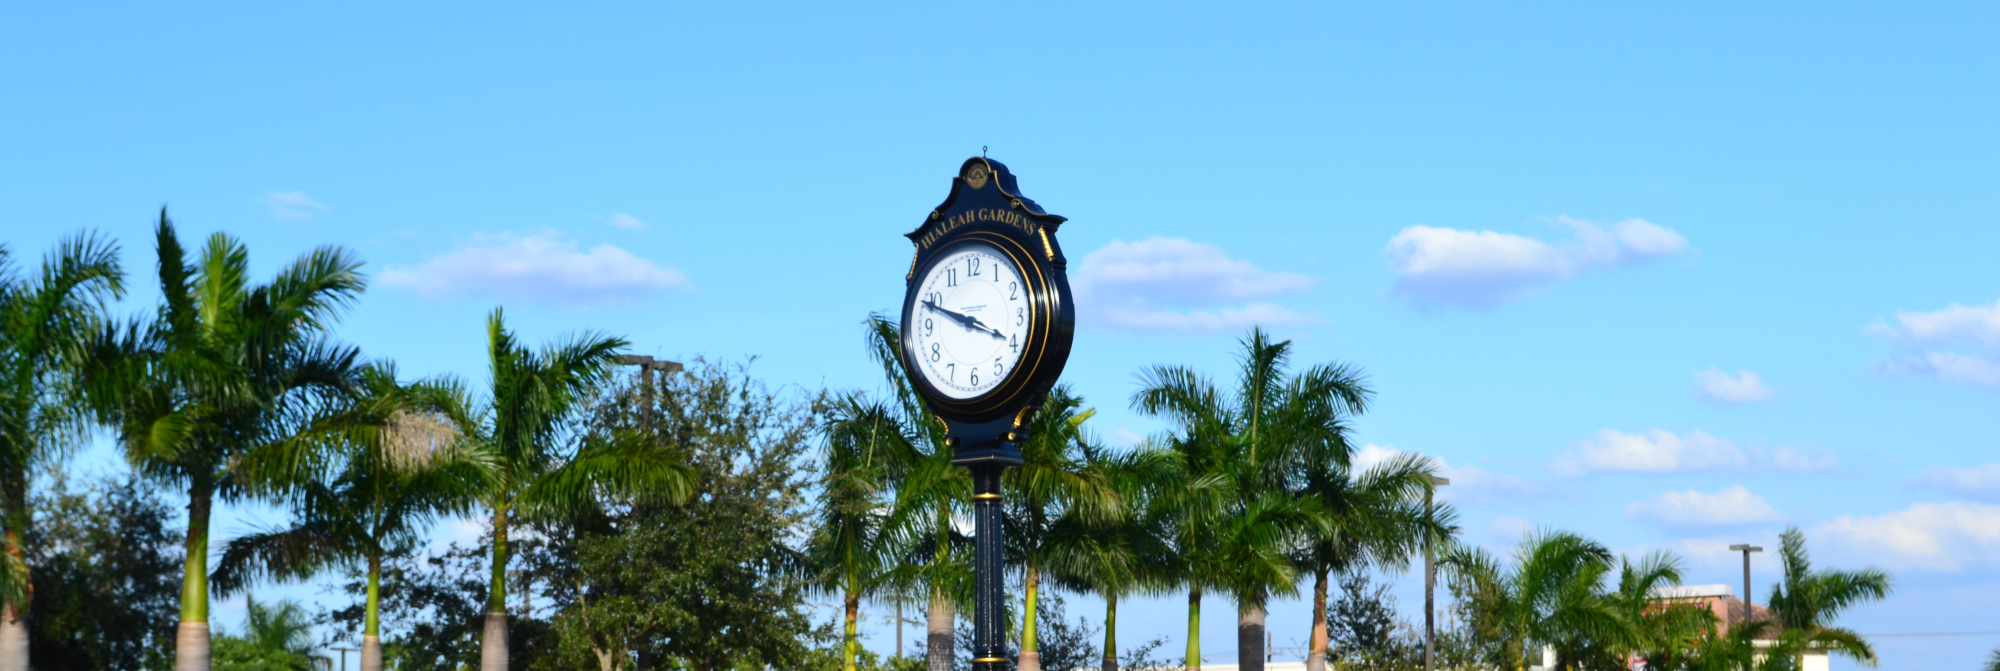 Clock and Palm Trees 2